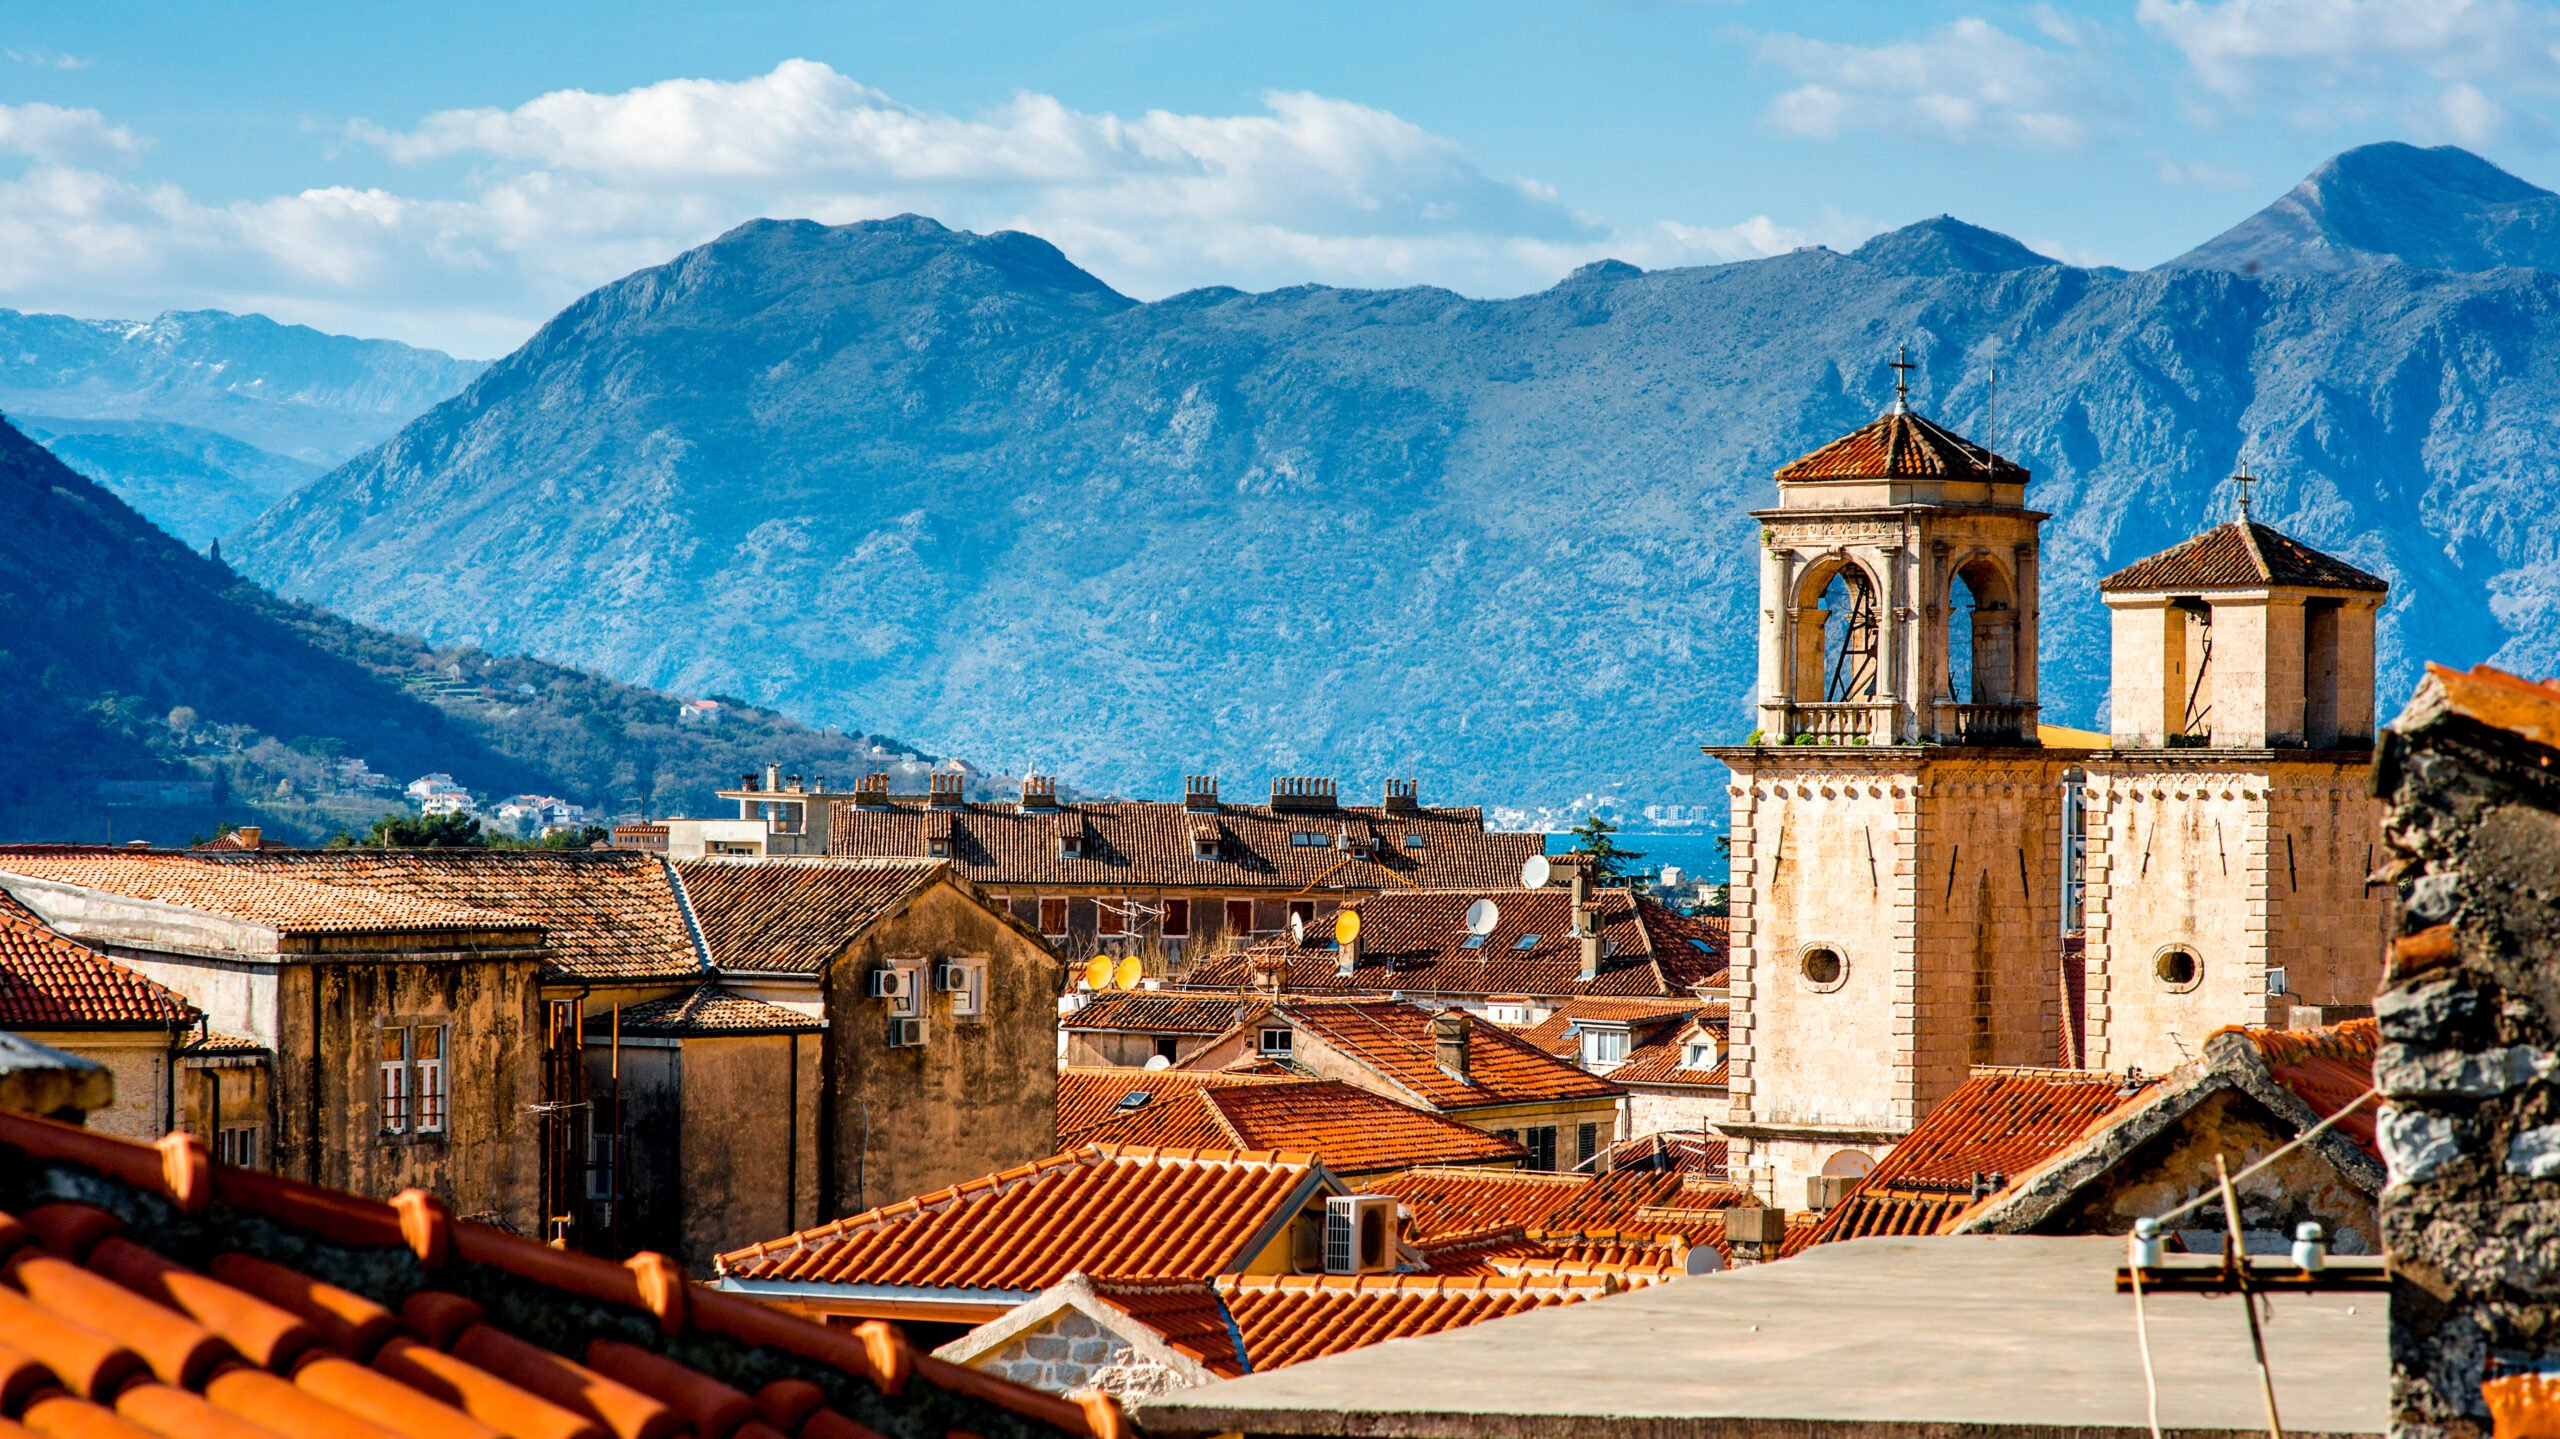 Learn About The History Of Cathedral Of Saint Tryphon In Our Kotor Shore Tour